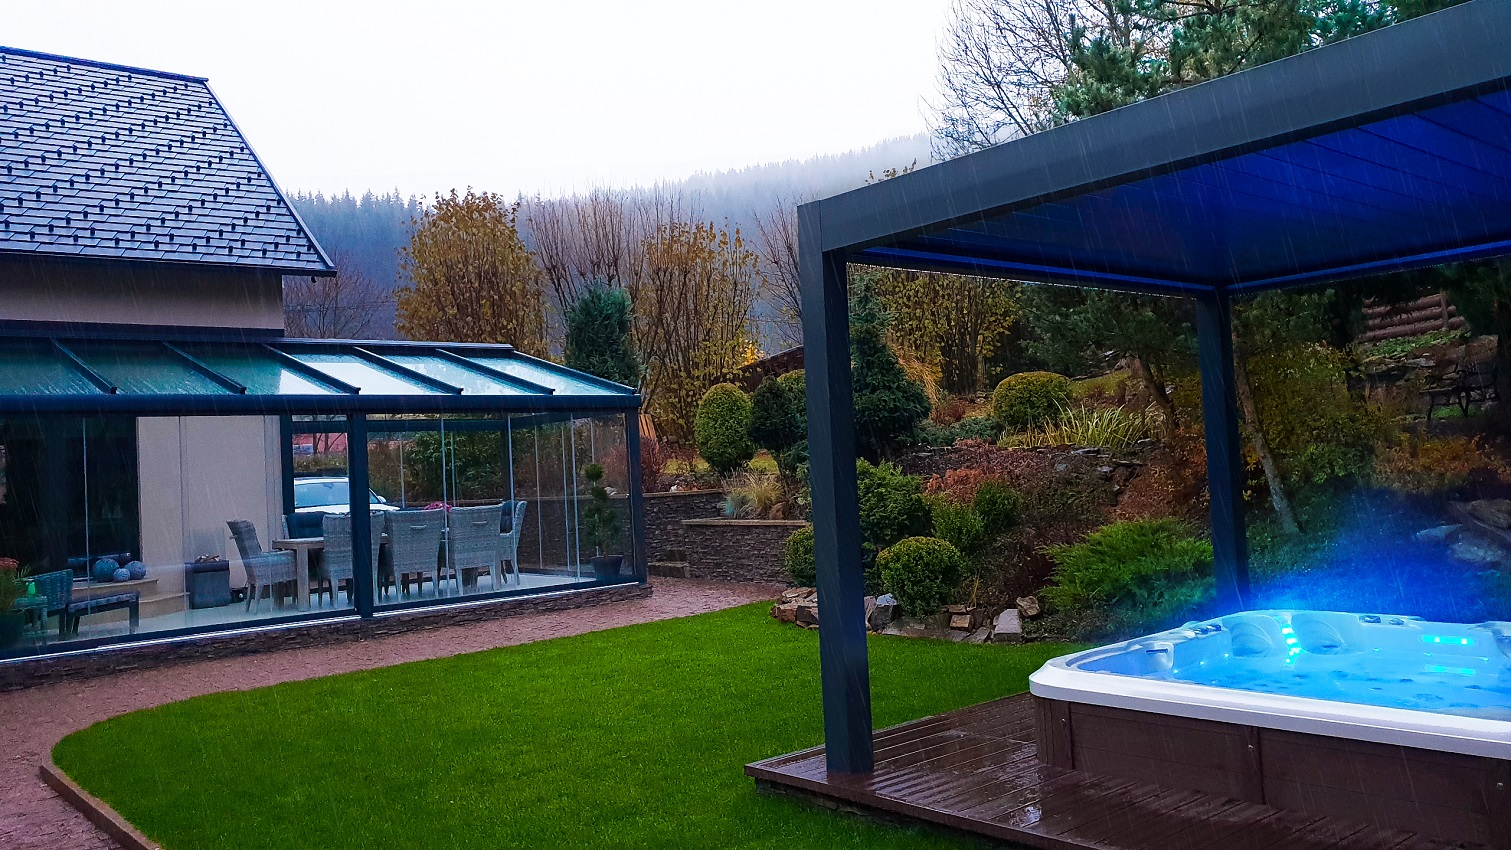 Hot tub jacuzzi Delphina Royal Vision in garden